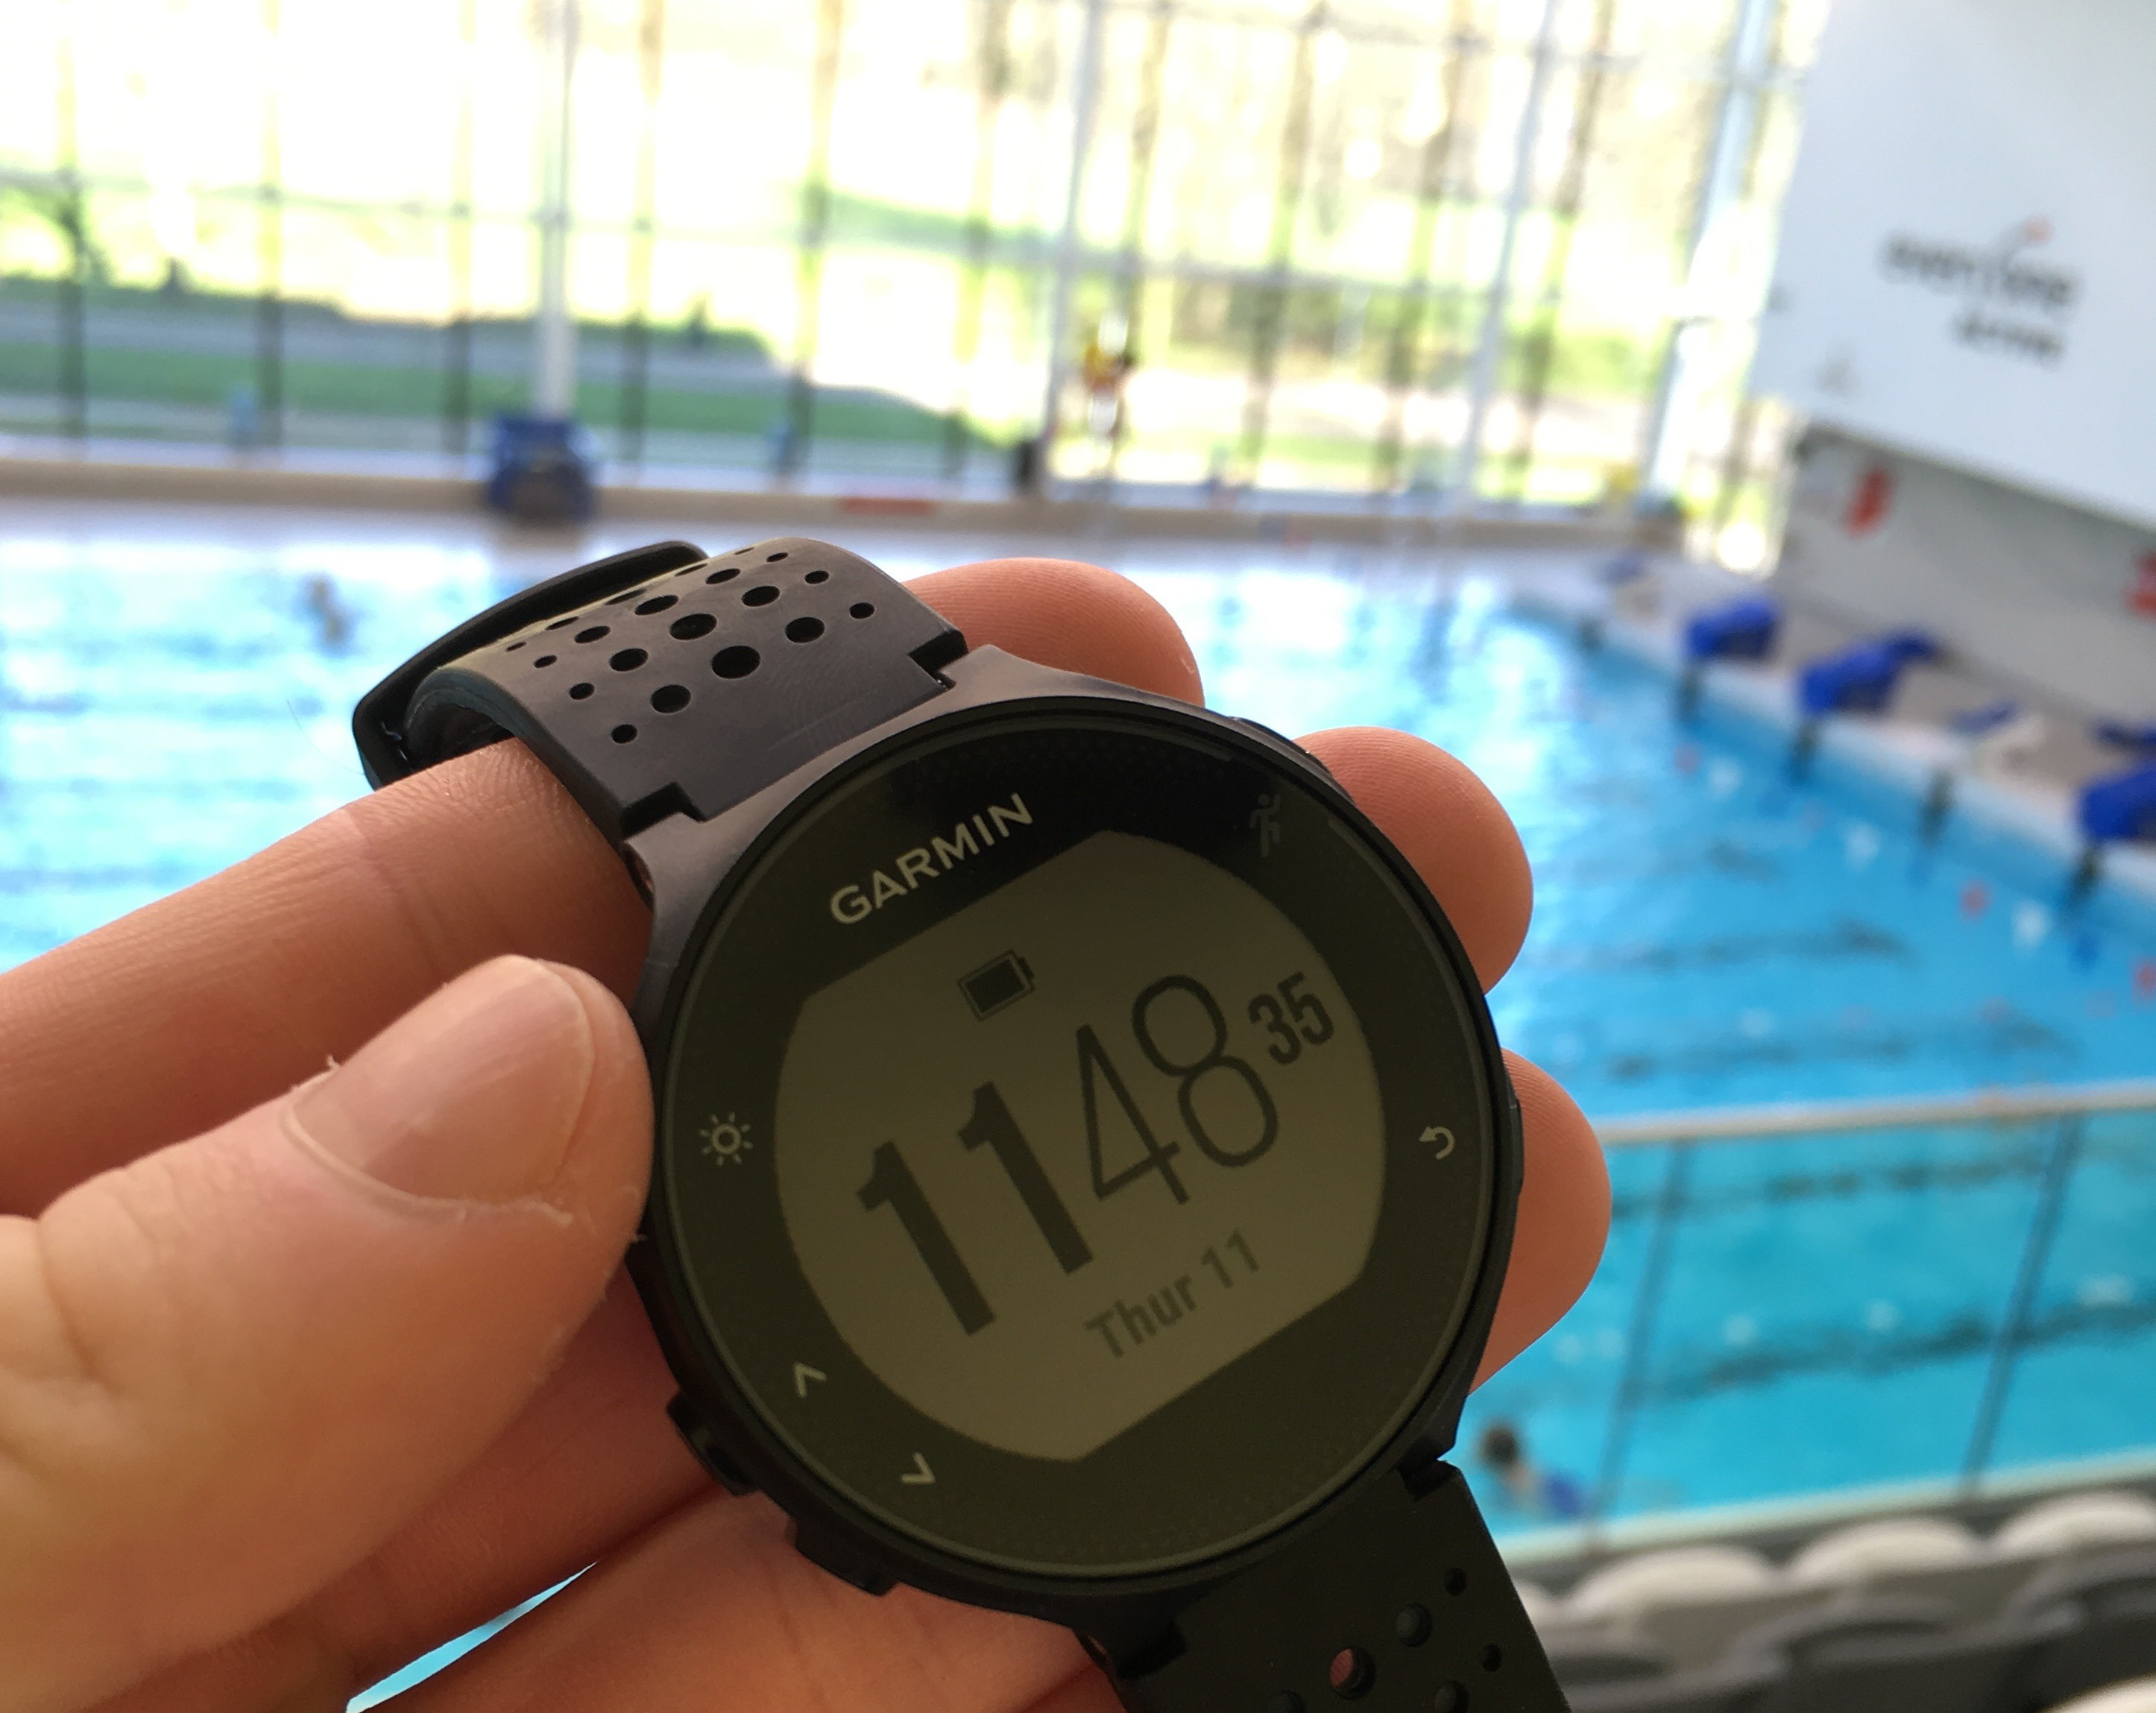 Swimming With The Garmin Forerunner 235 Run Reporter